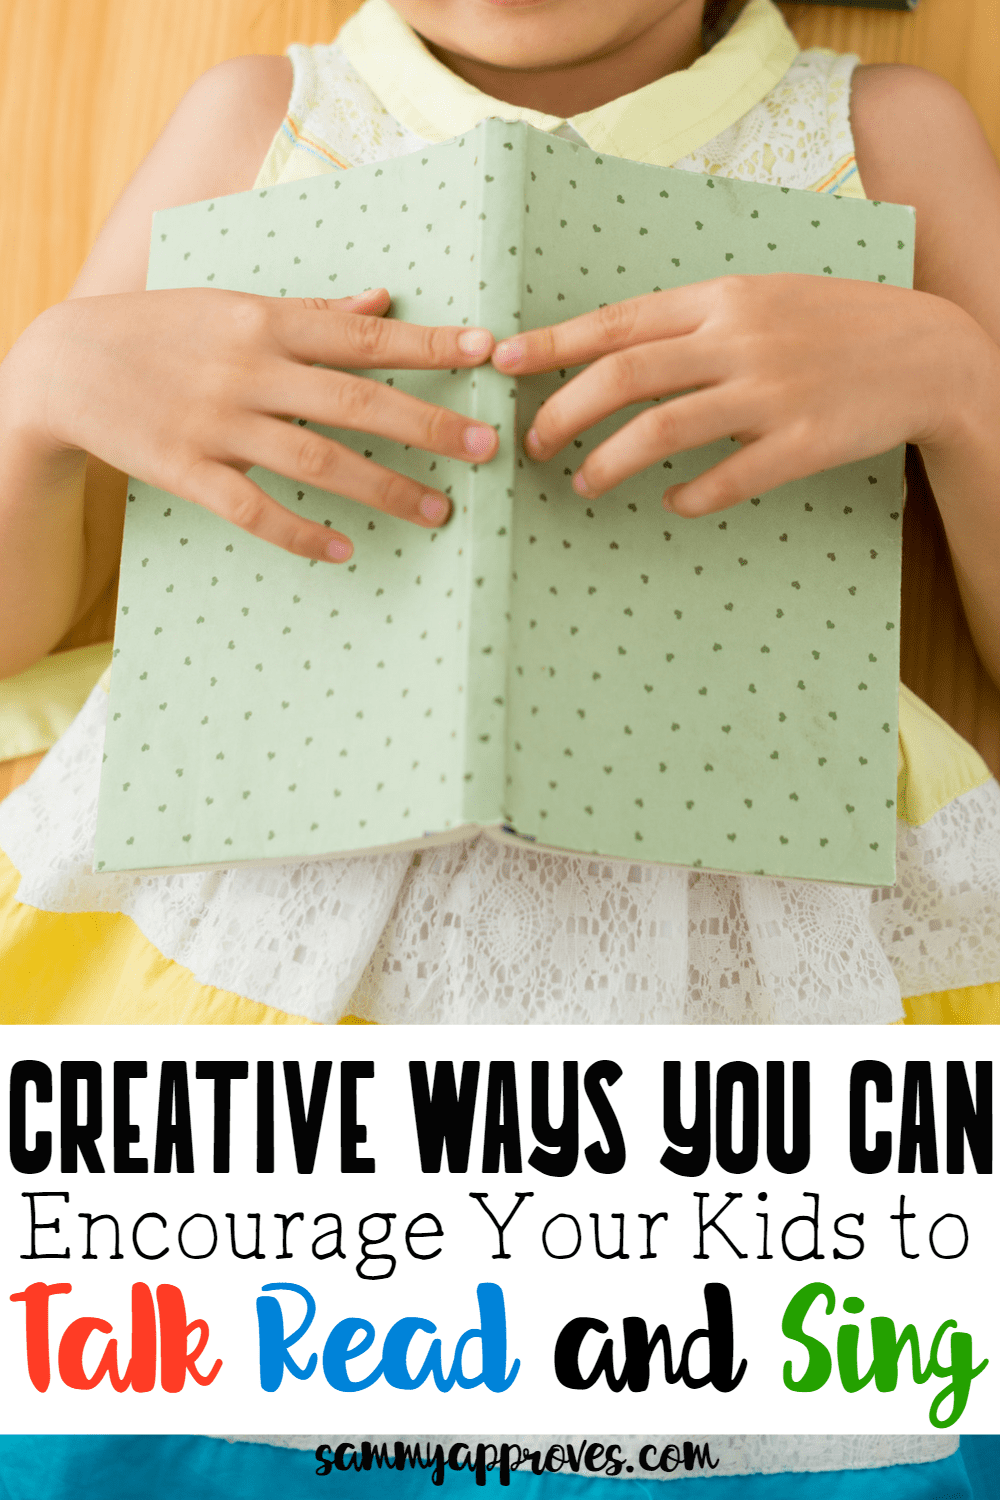 Creative Ways to Encourage Your Kids to Talk, Read, & Sing